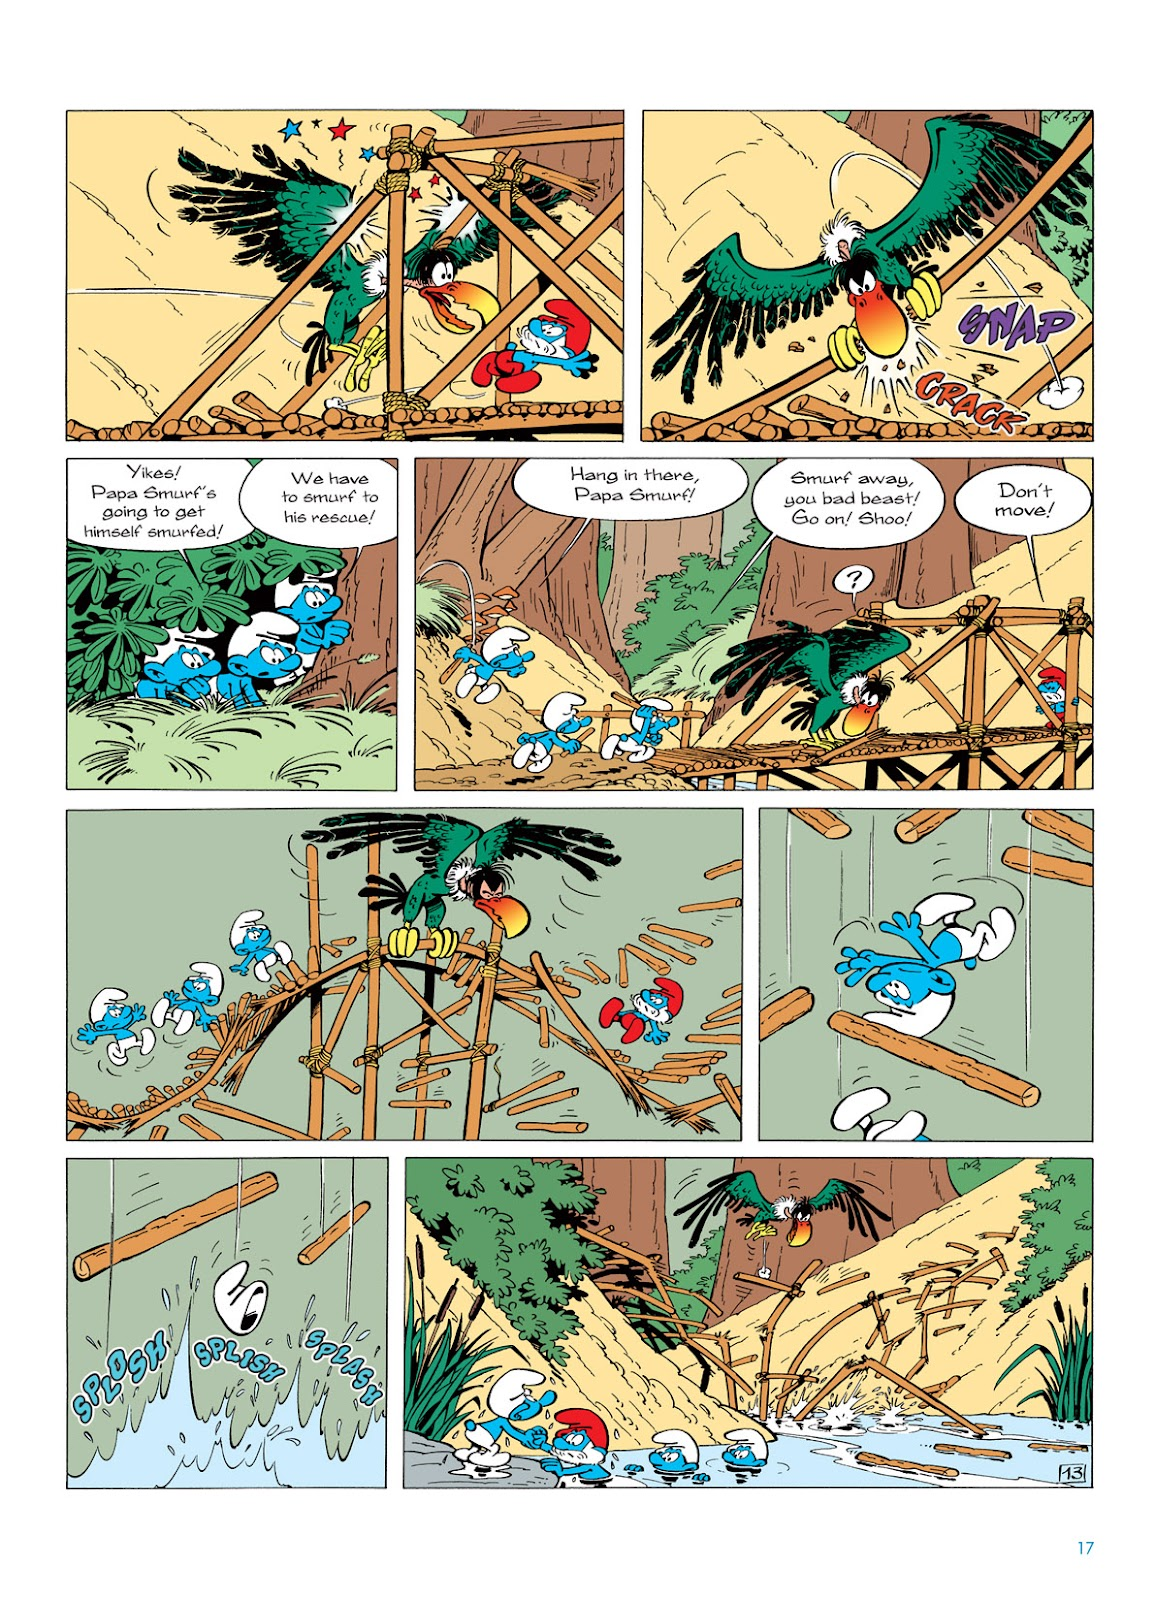 Read online The Smurfs comic -  Issue #6 - 17